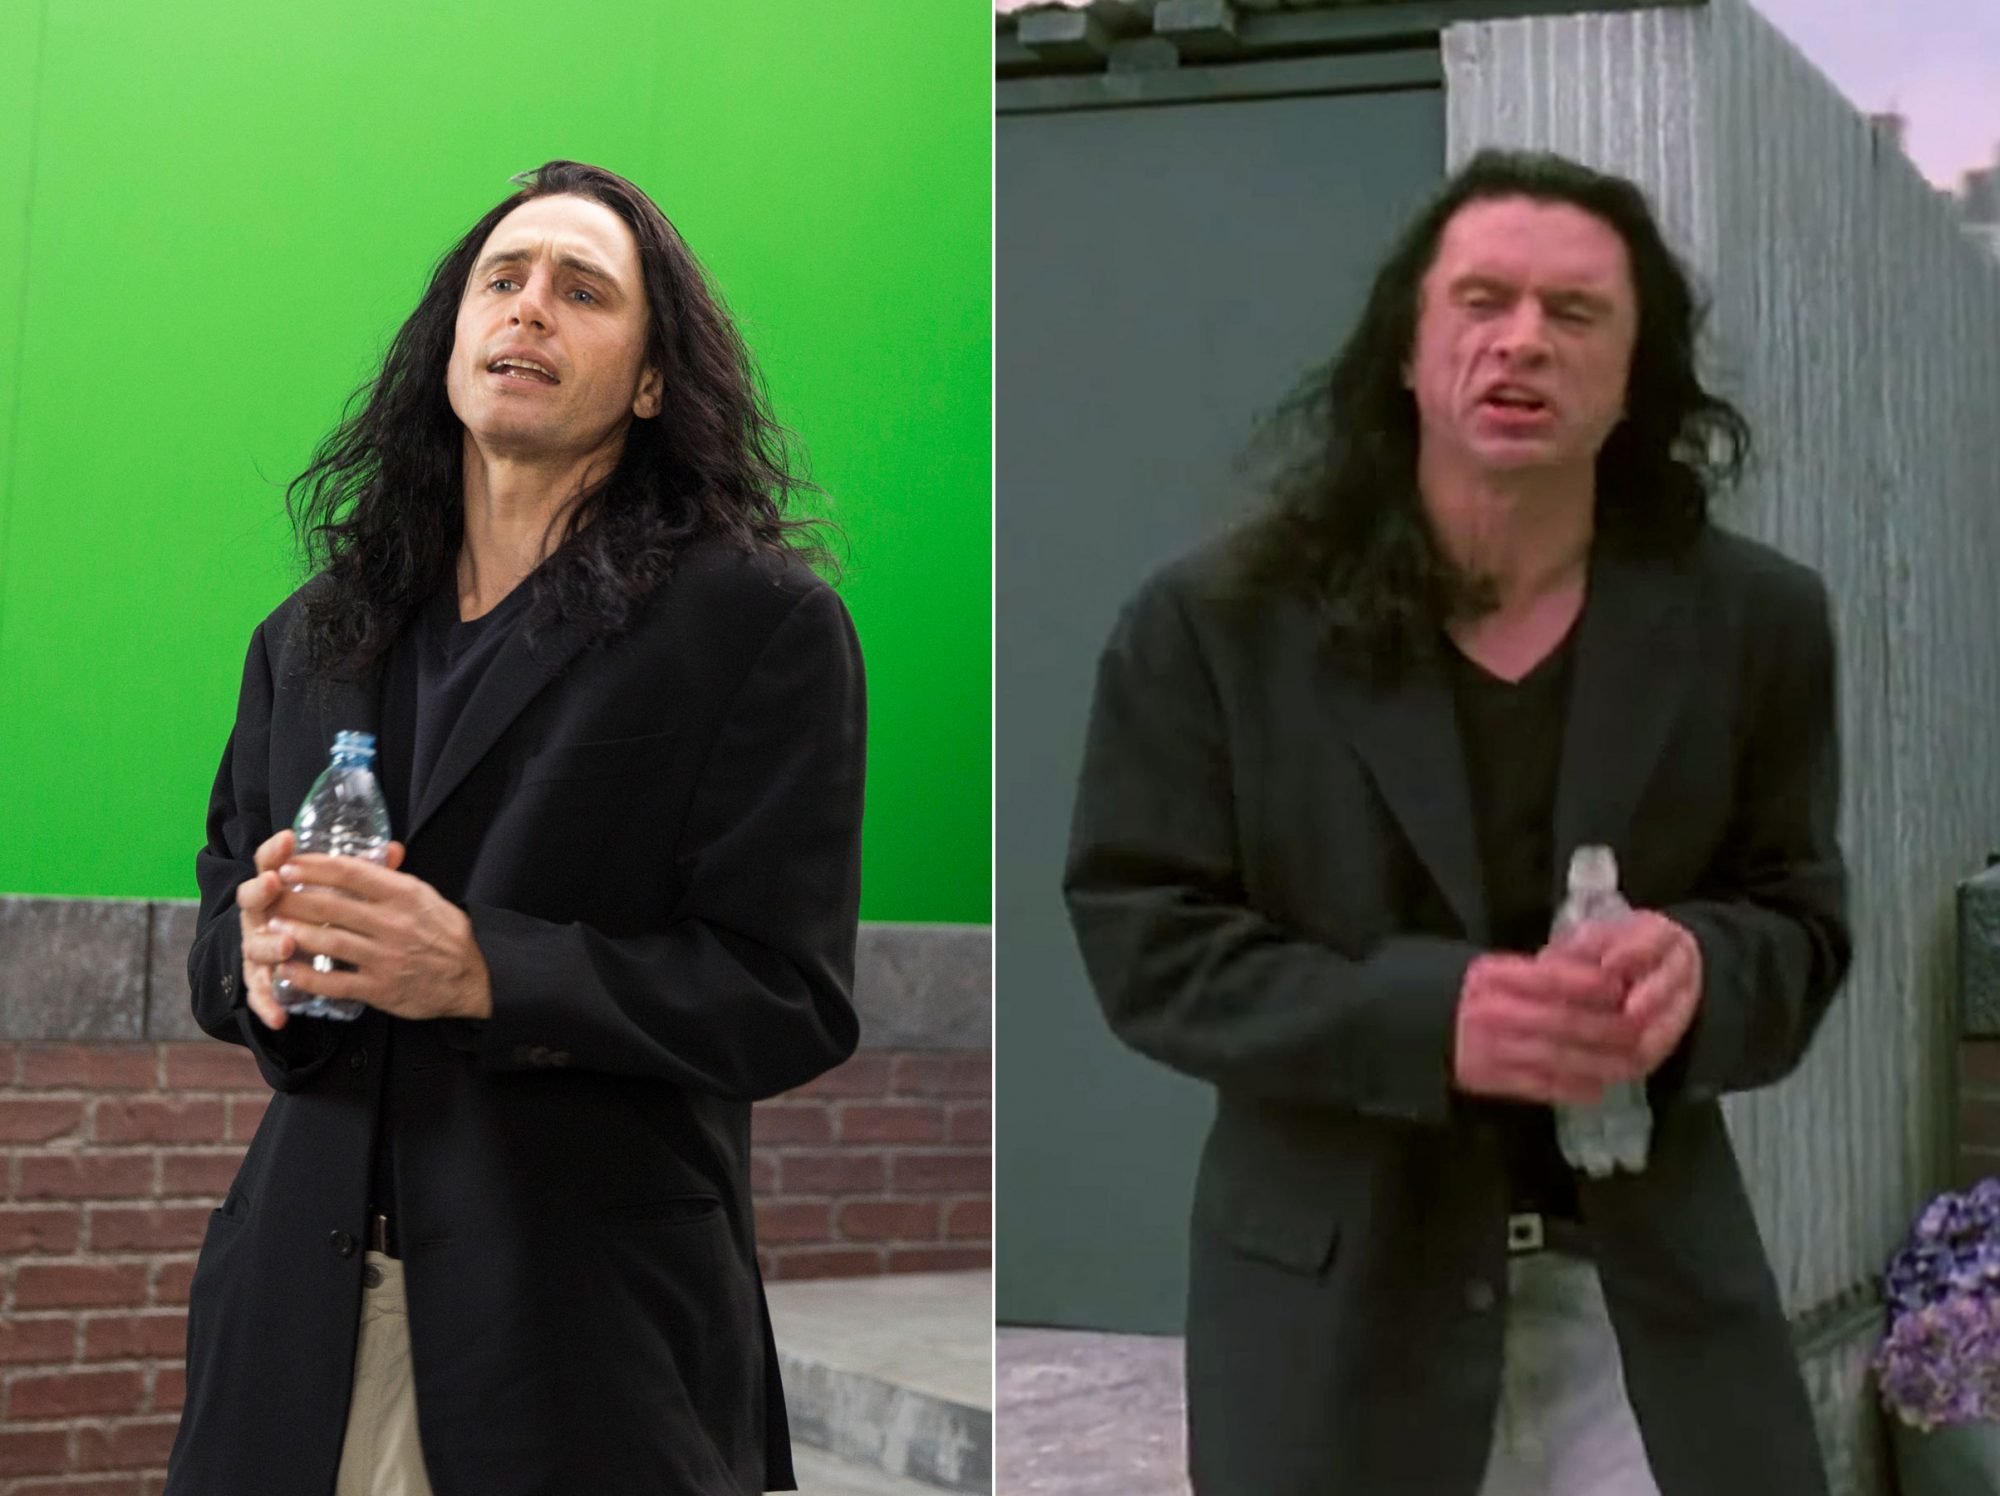 James Franco as Tommy Wiseau2